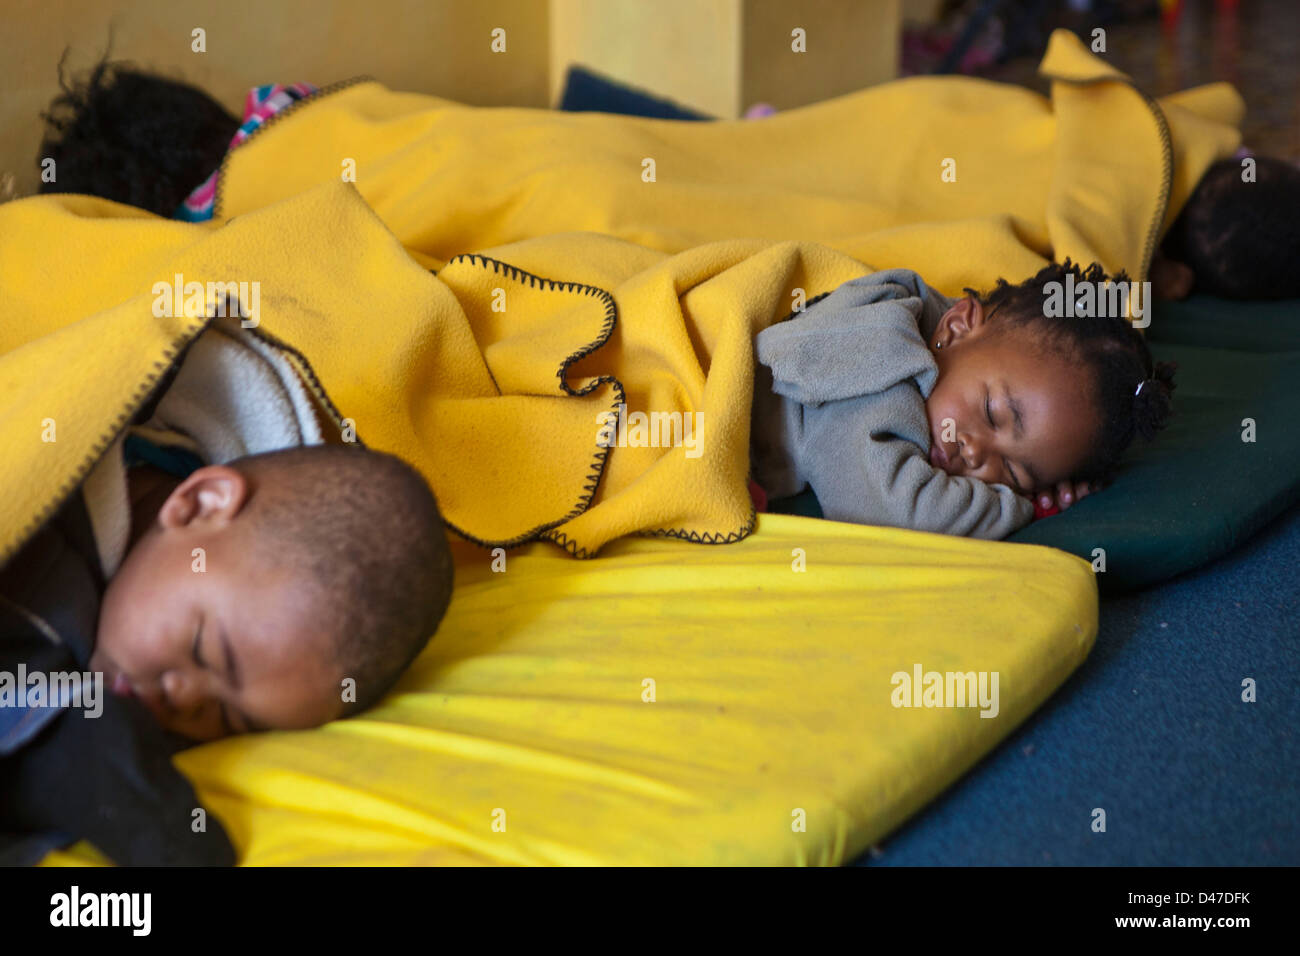 Children Sleeping On Floor Mats Stock Photos Children Sleeping